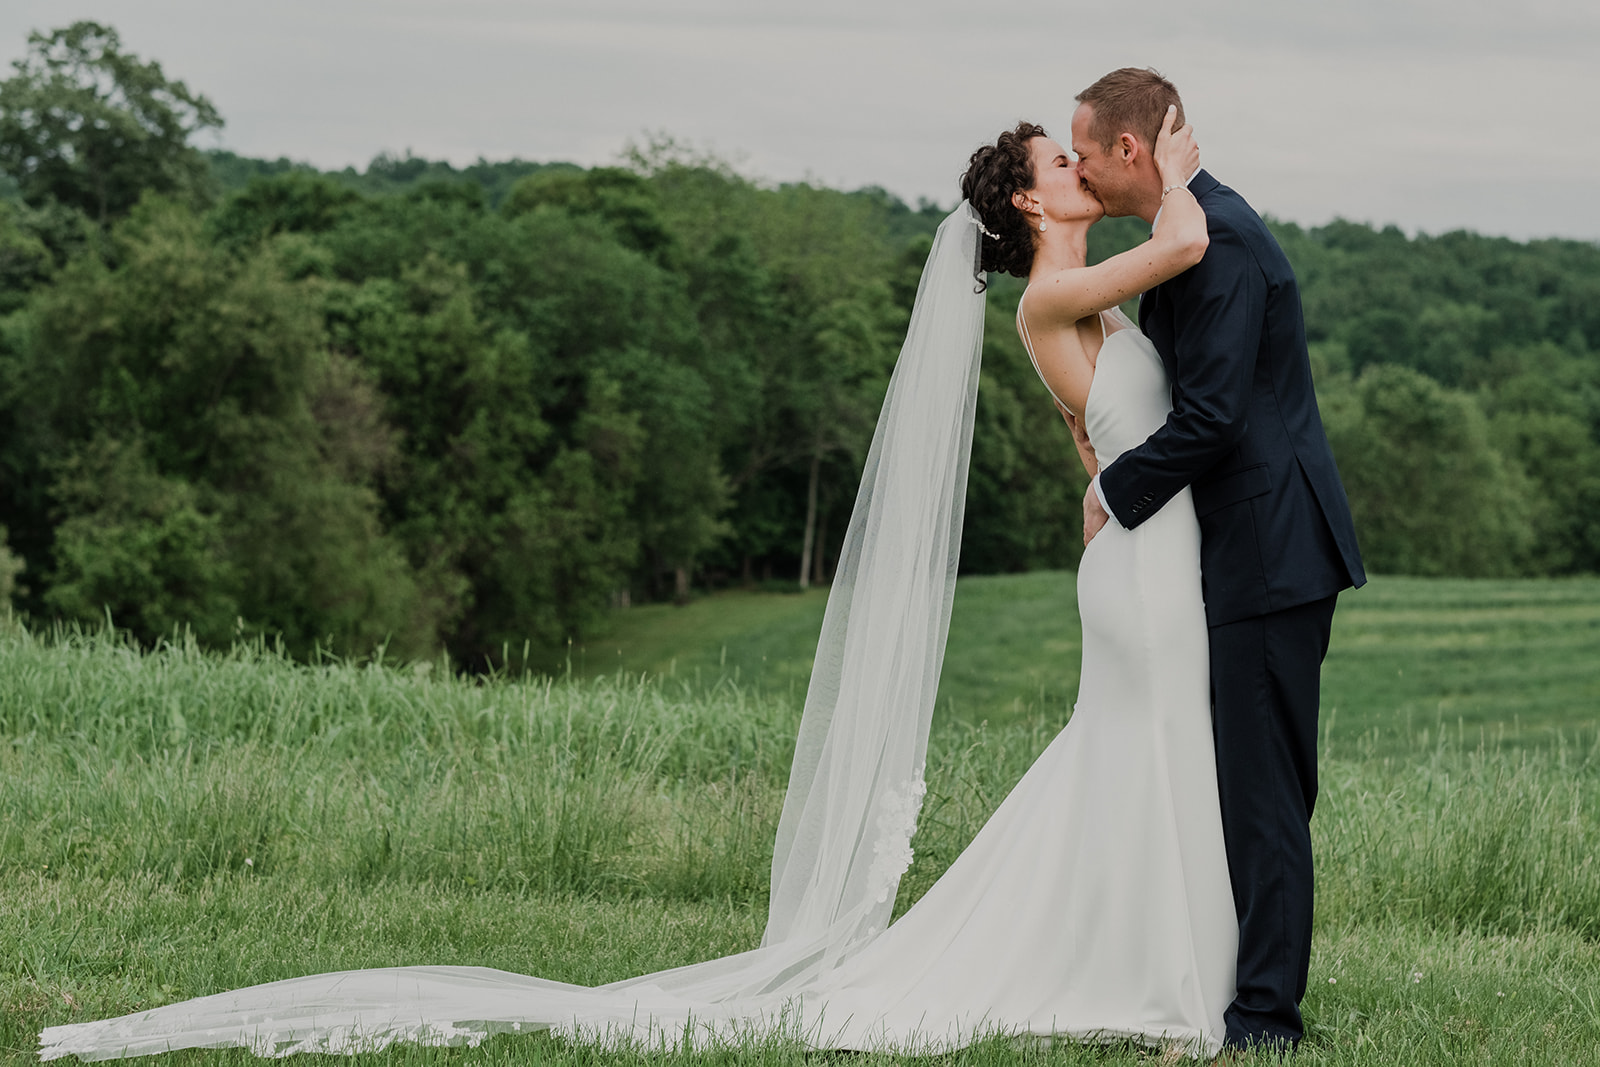 A bride and groom kiss during their first look before their outdoor wedding ceremony at Blue Hill Farm in Waterford, VA.